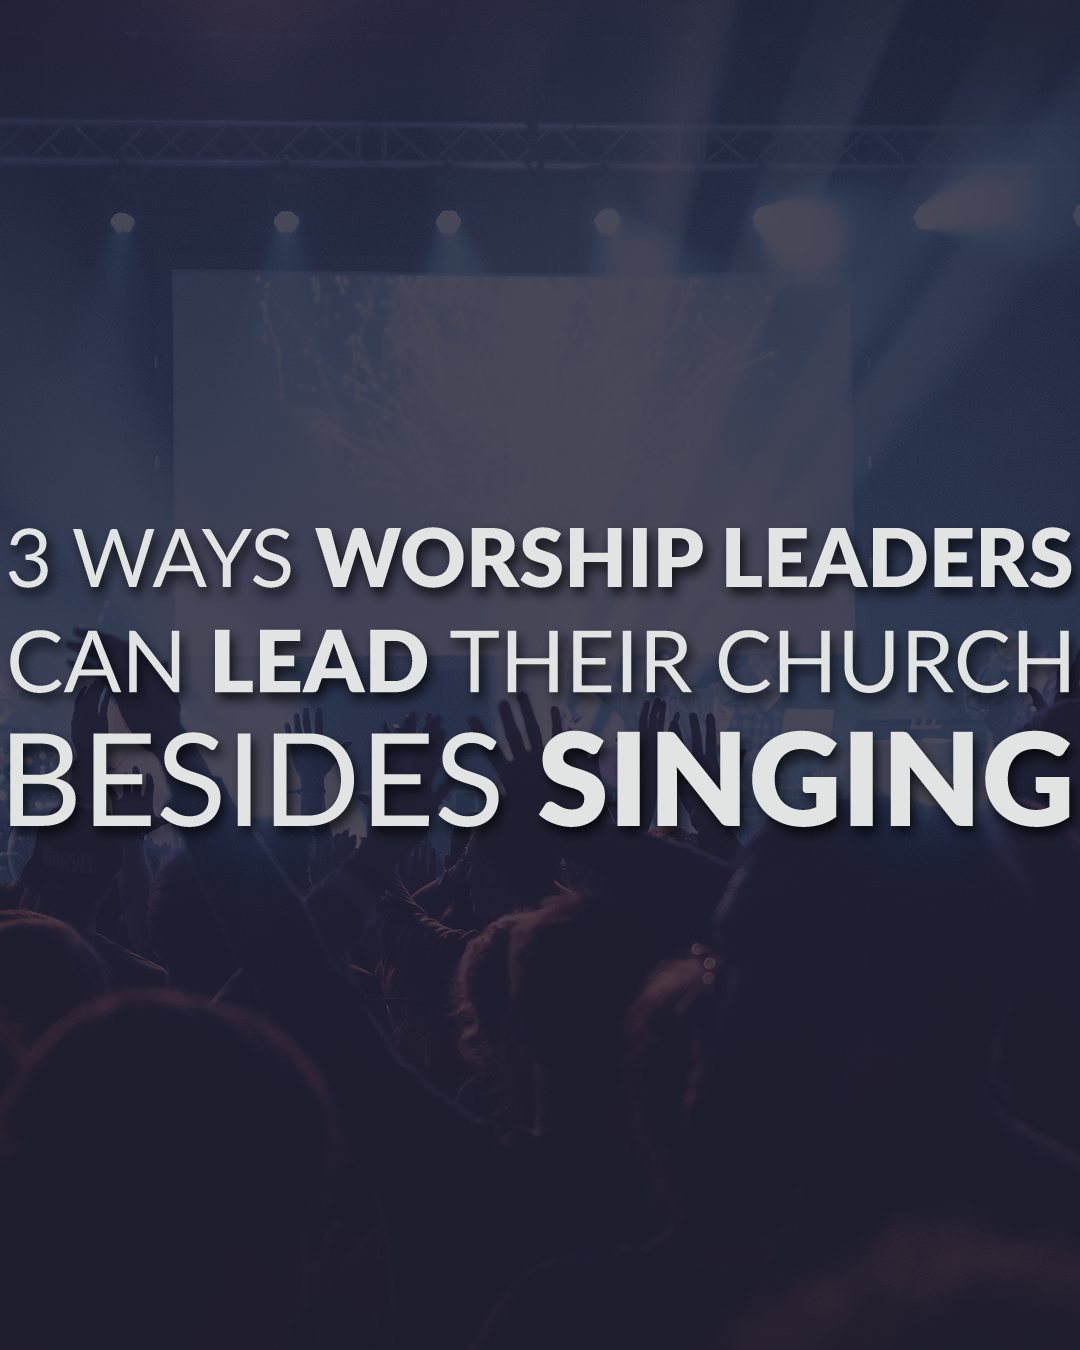 3 Ways Worship Leaders Can Lead Their Church Besides Singing